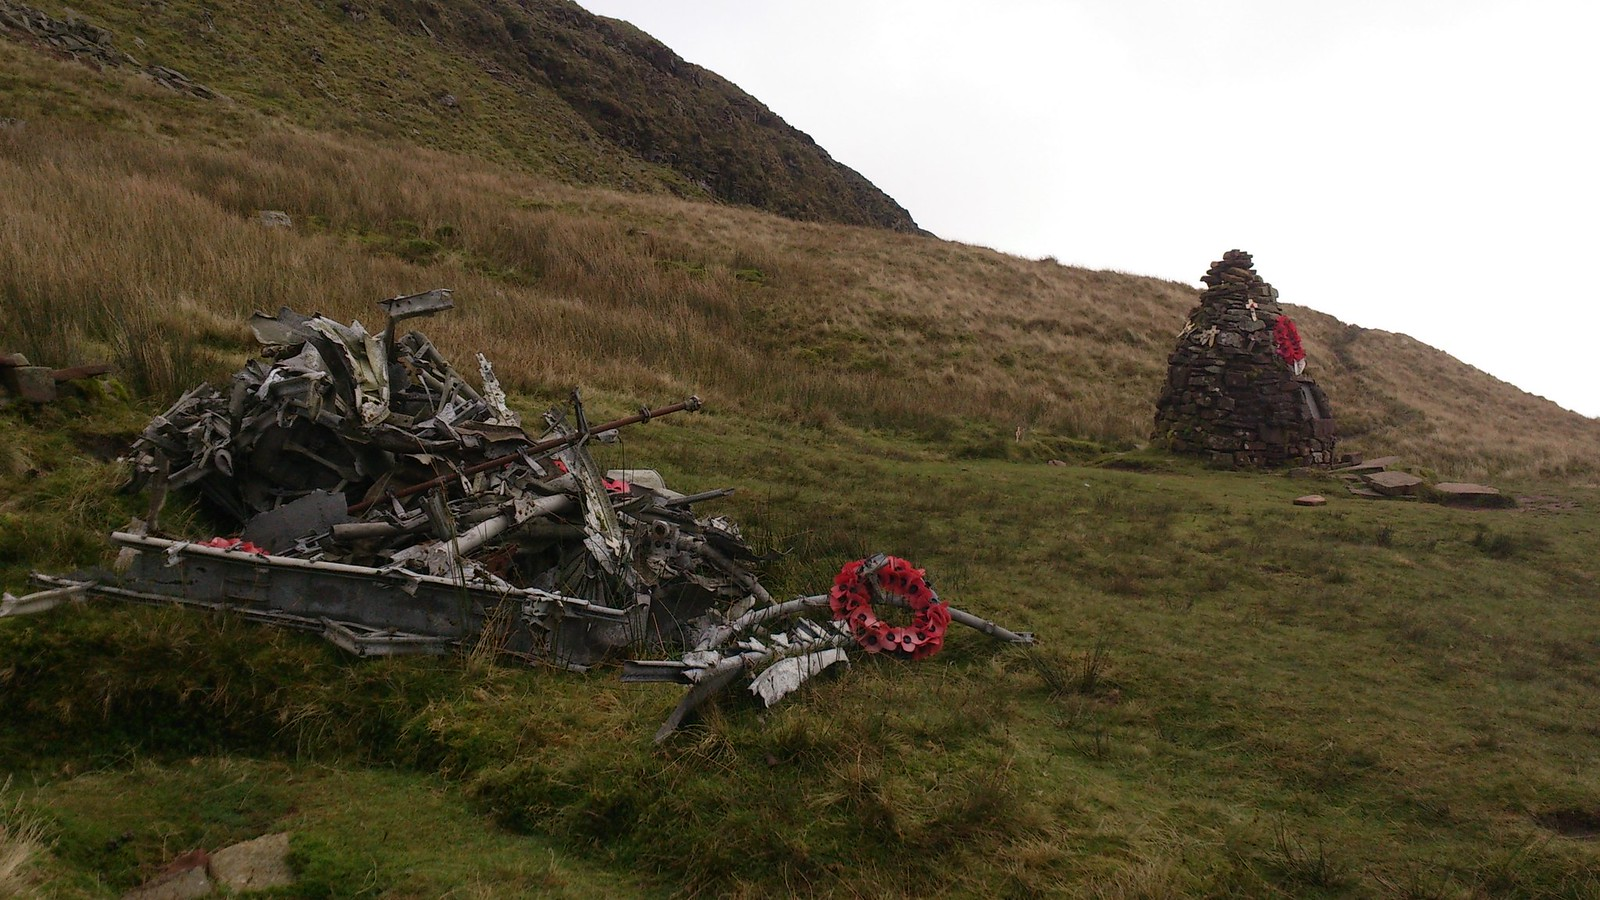 WWII Memorial for five Canadian Aircrew, by the Cwar y Gigfran, with heap of aircraft debris SWC Walk 278 Breacon Beacons Horseshoe - Bannau Brycheiniog (Extension to Waun Rydd)